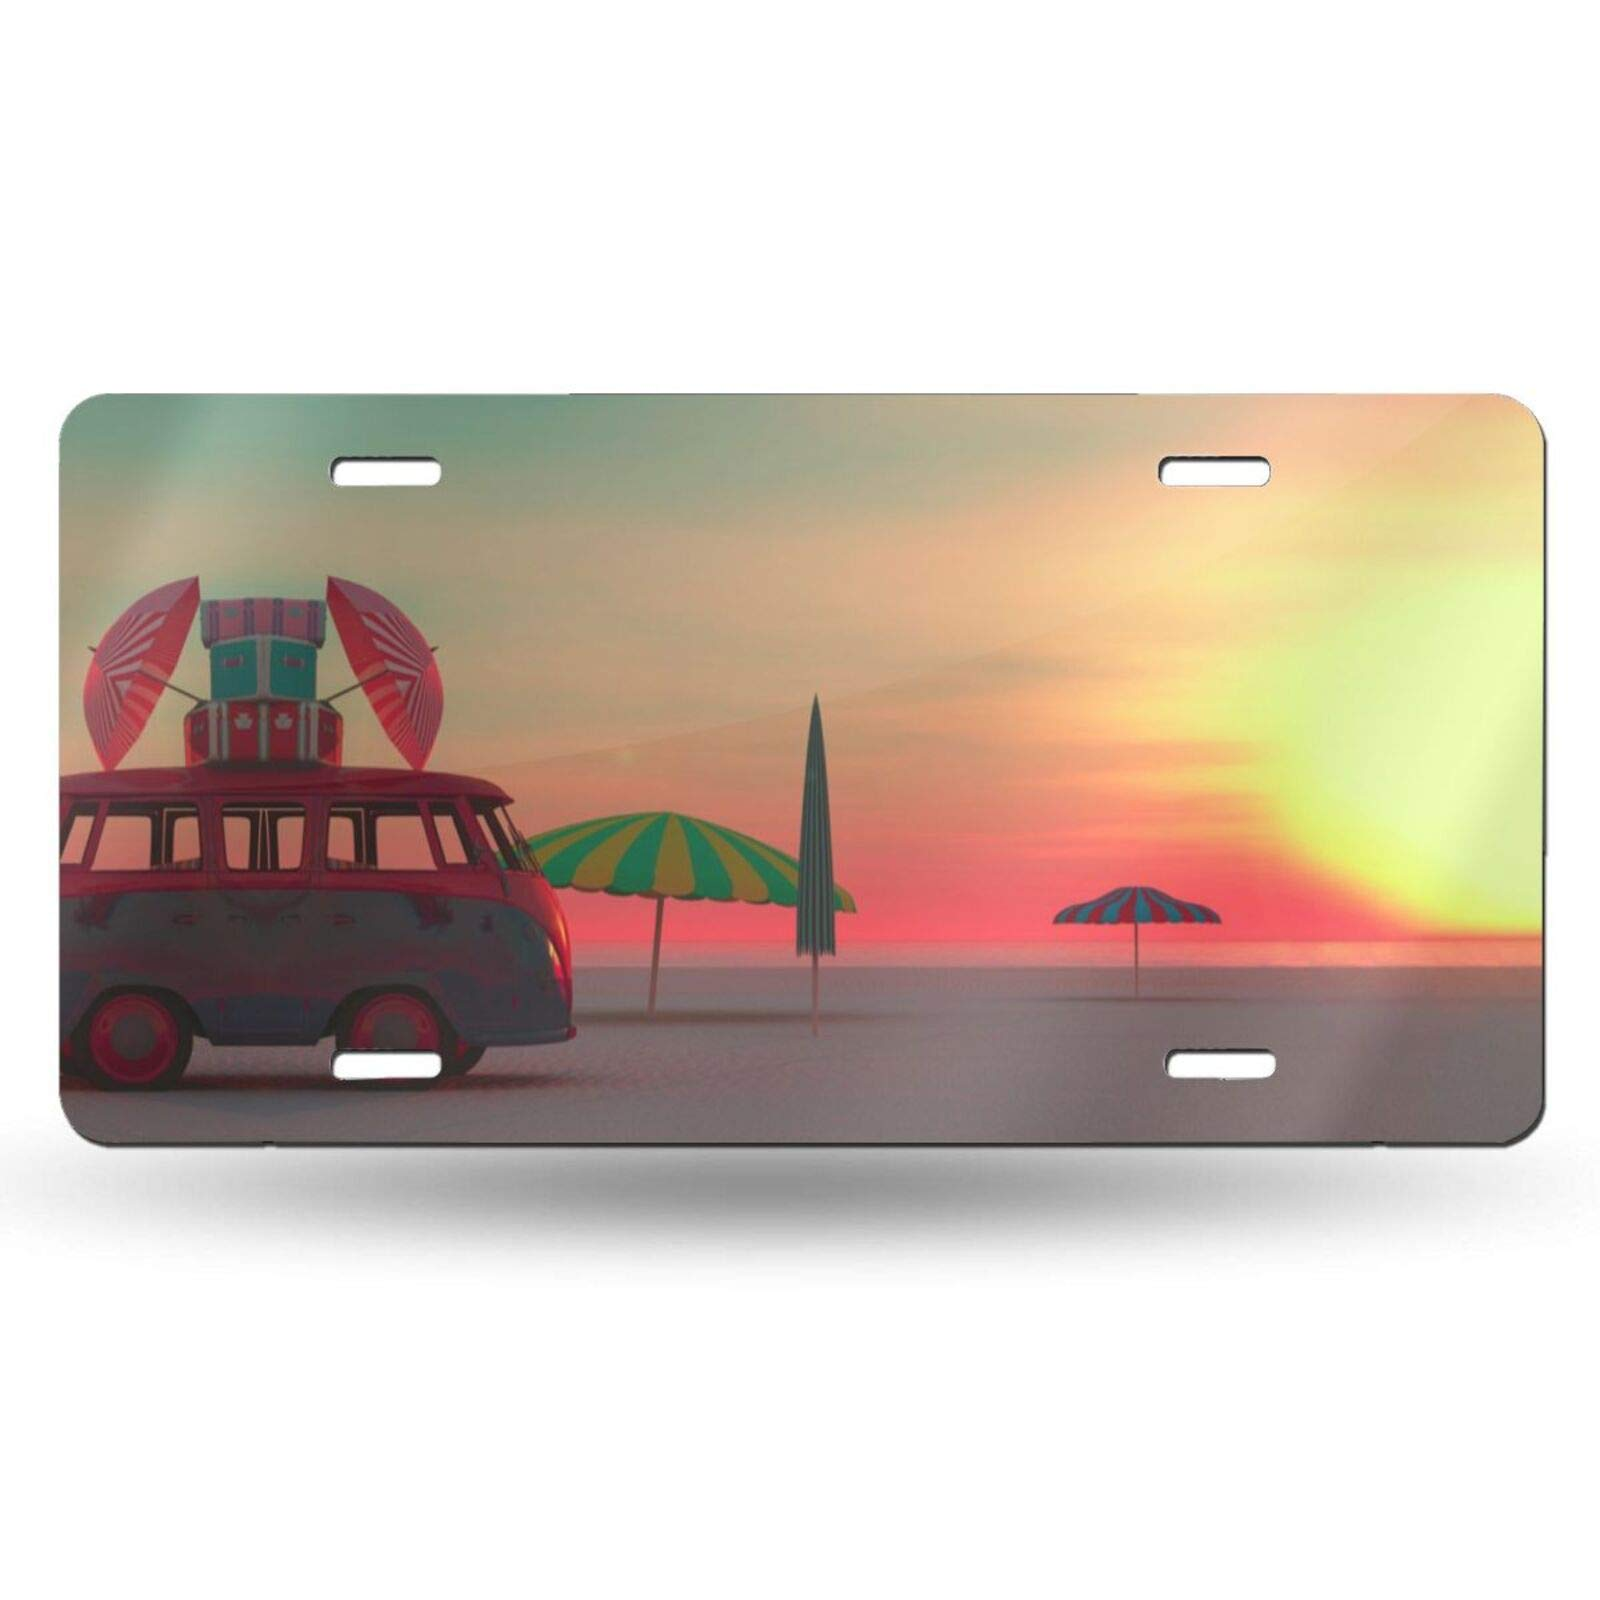 OHDS Summer Blue Bus on The Beach Pattern Decorative Car Front License Plate, The Ocean at Sunrise Car Tag, Metal Vanity Plate, Novelty Aluminum Lincense Plate for Man & Women, 6 X 12 Inch